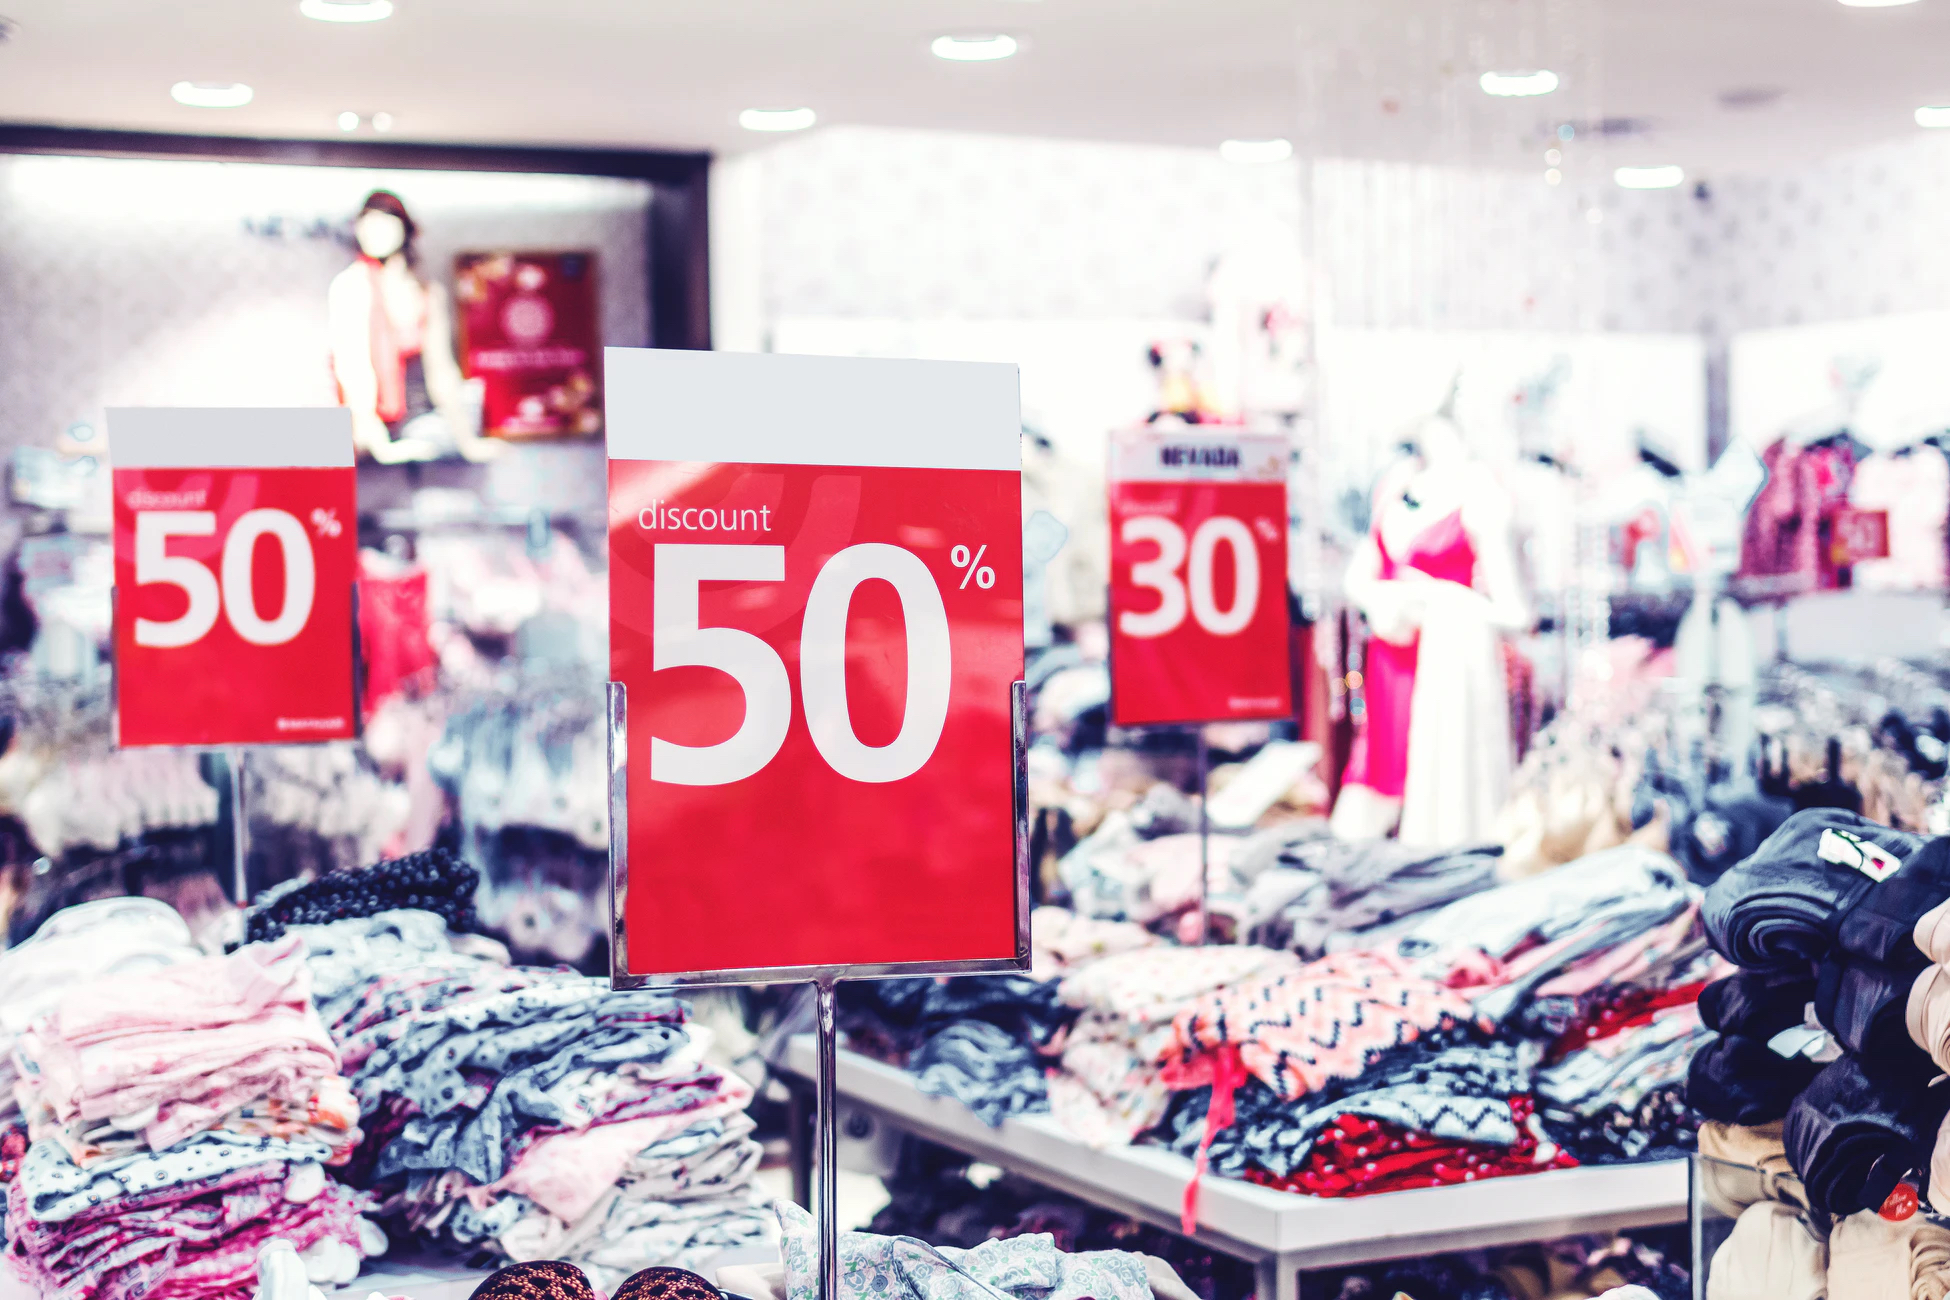 A store display with various items for sale at a discount with couponing.